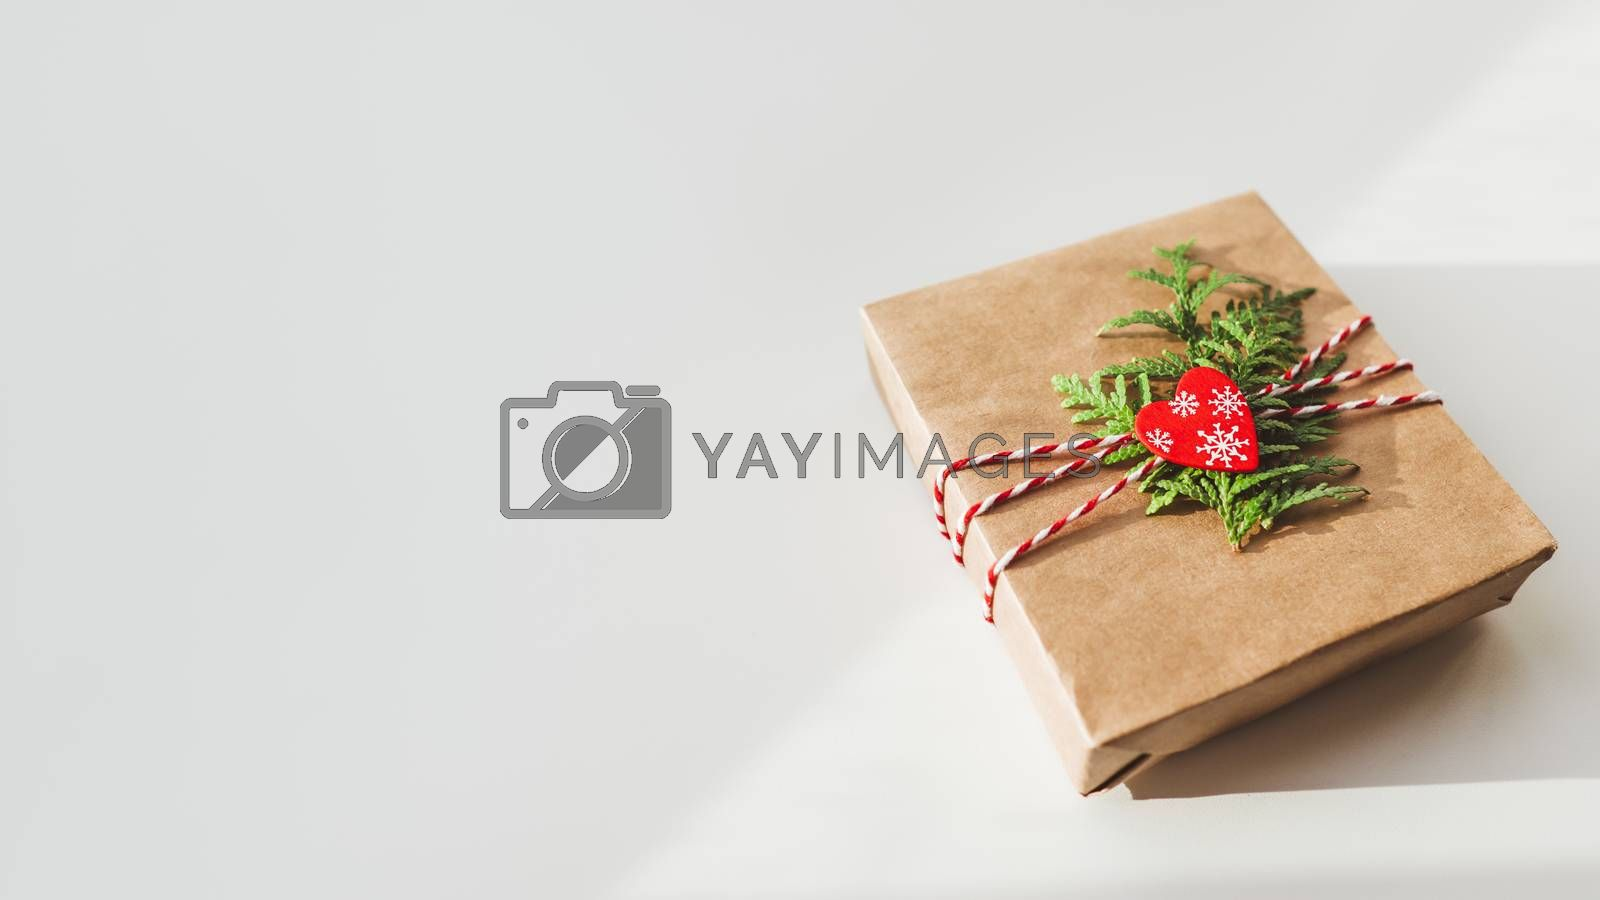 Christmas DIY presents wrapped in craft paper with fir tree branches and red heart. Decorations on New Year gifts. Festive background. Winter holiday spirit.